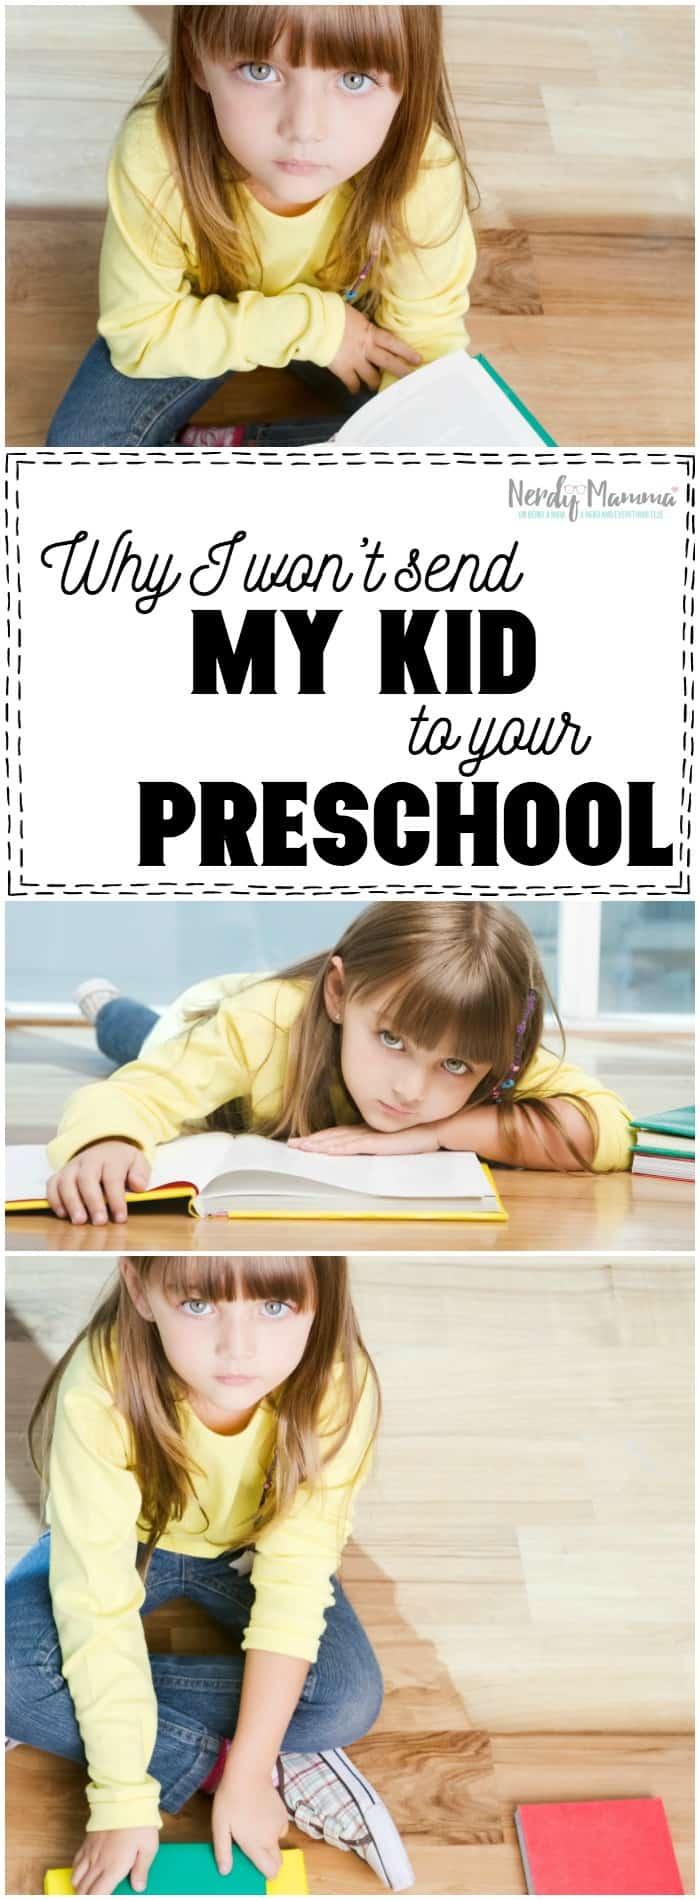 THis mom is right. We don't have to send our kids to preschools that don't care about ALL kids. Not cool.